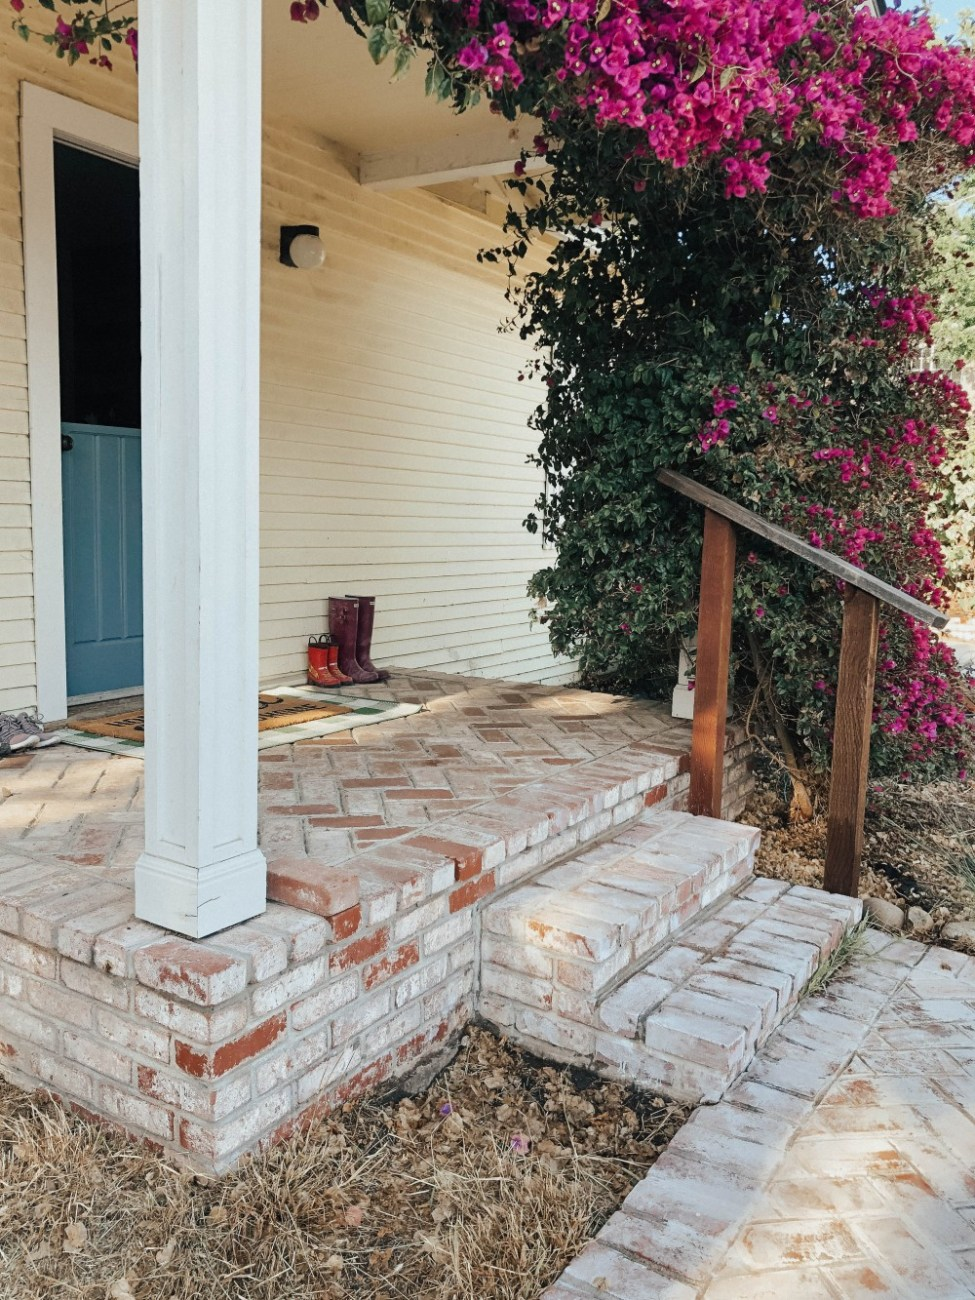 Sharing a quick and easy DIY project that can be done in a weekend! Whitewashing brick is a project that makes a huge impact with minimal effort. Click on over to the post to check out what you'll need and the steps to take. #diyproject #whitewashingbrick #whitewashedbrick #brickwalkway